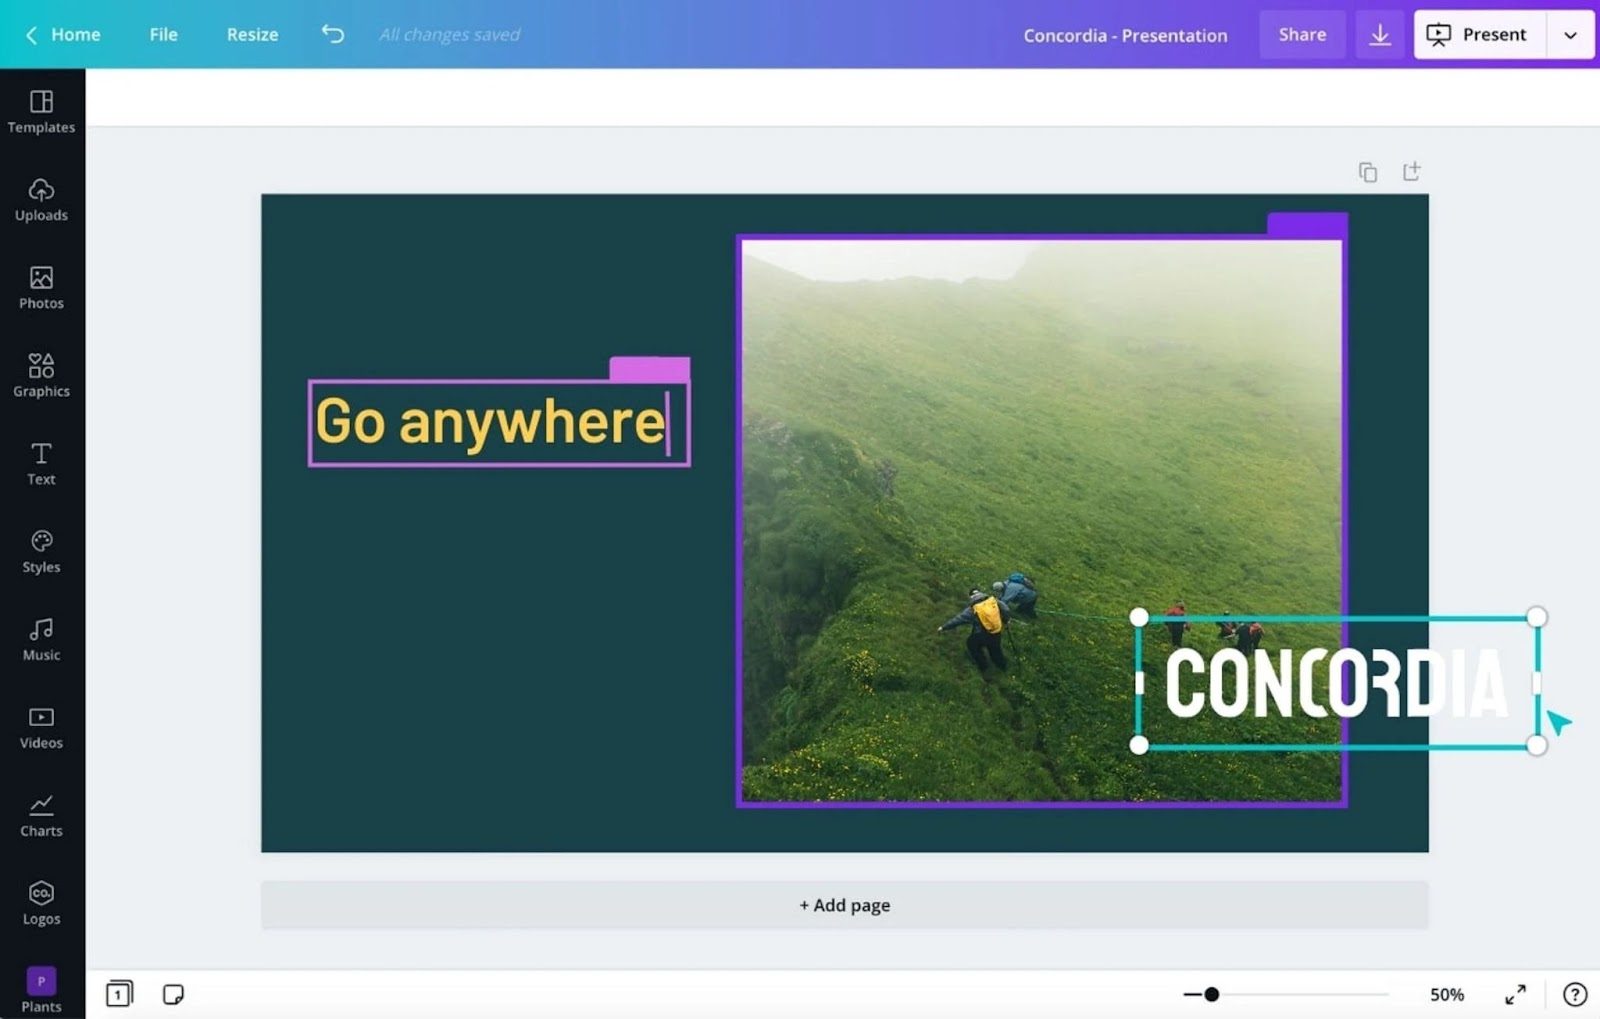 Real-time collaboration in Canva